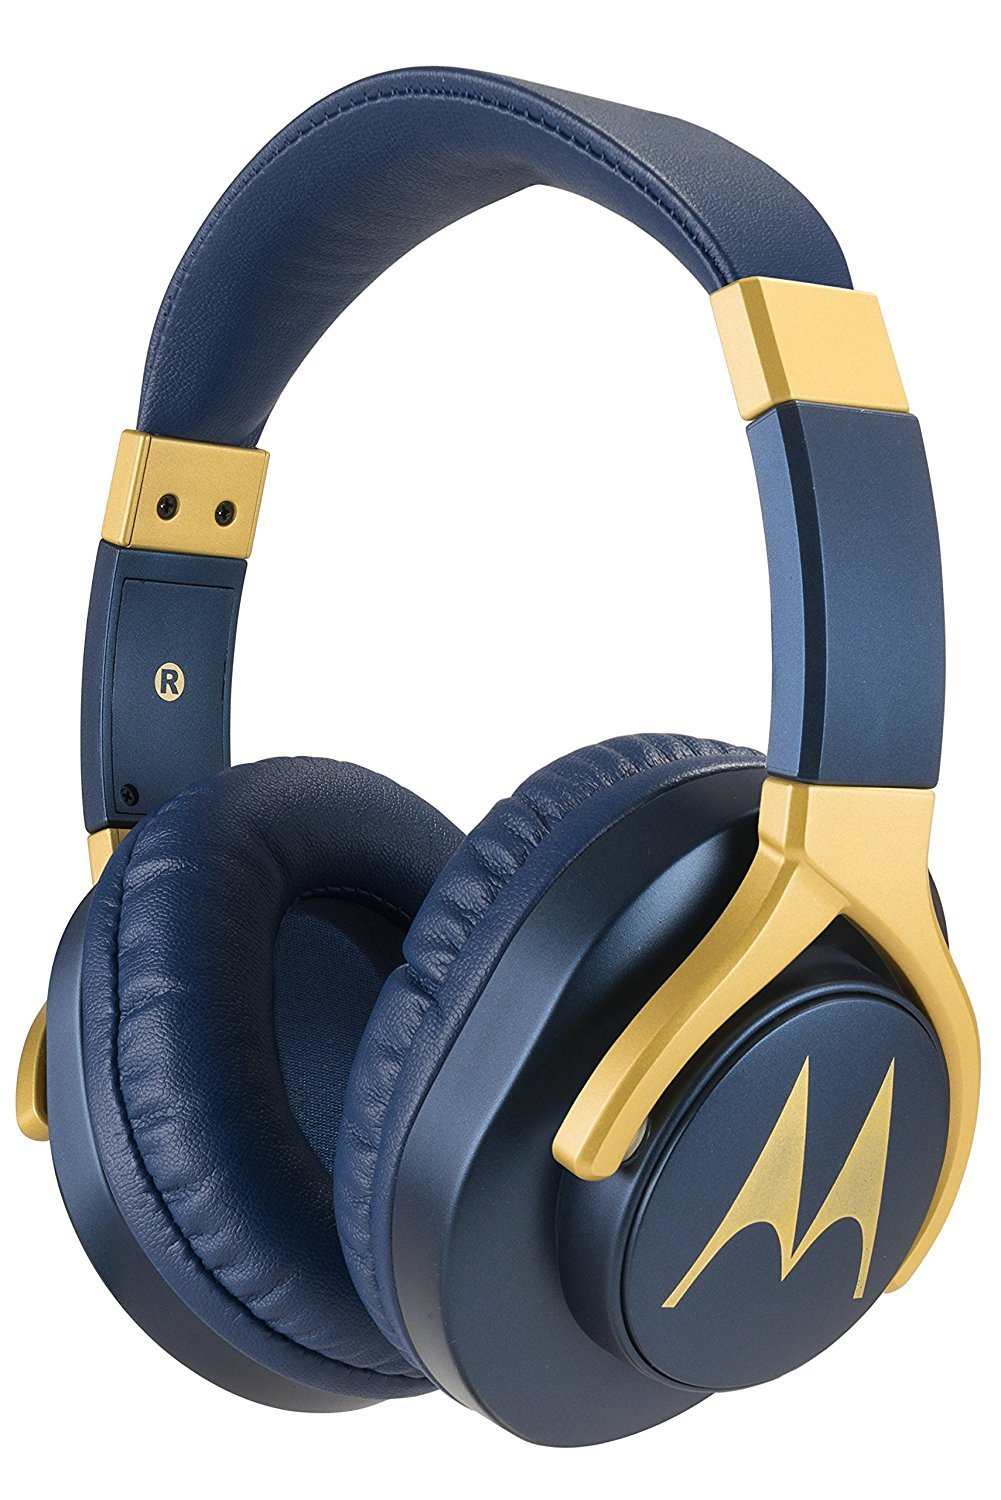 Motorola Pulse 3 Max Over Ear Wired Headphones With Alexa Blue Buy Online In Barbados Motorola Products In Barbados See Prices Reviews And Free Delivery Over Bds 150 Desertcart